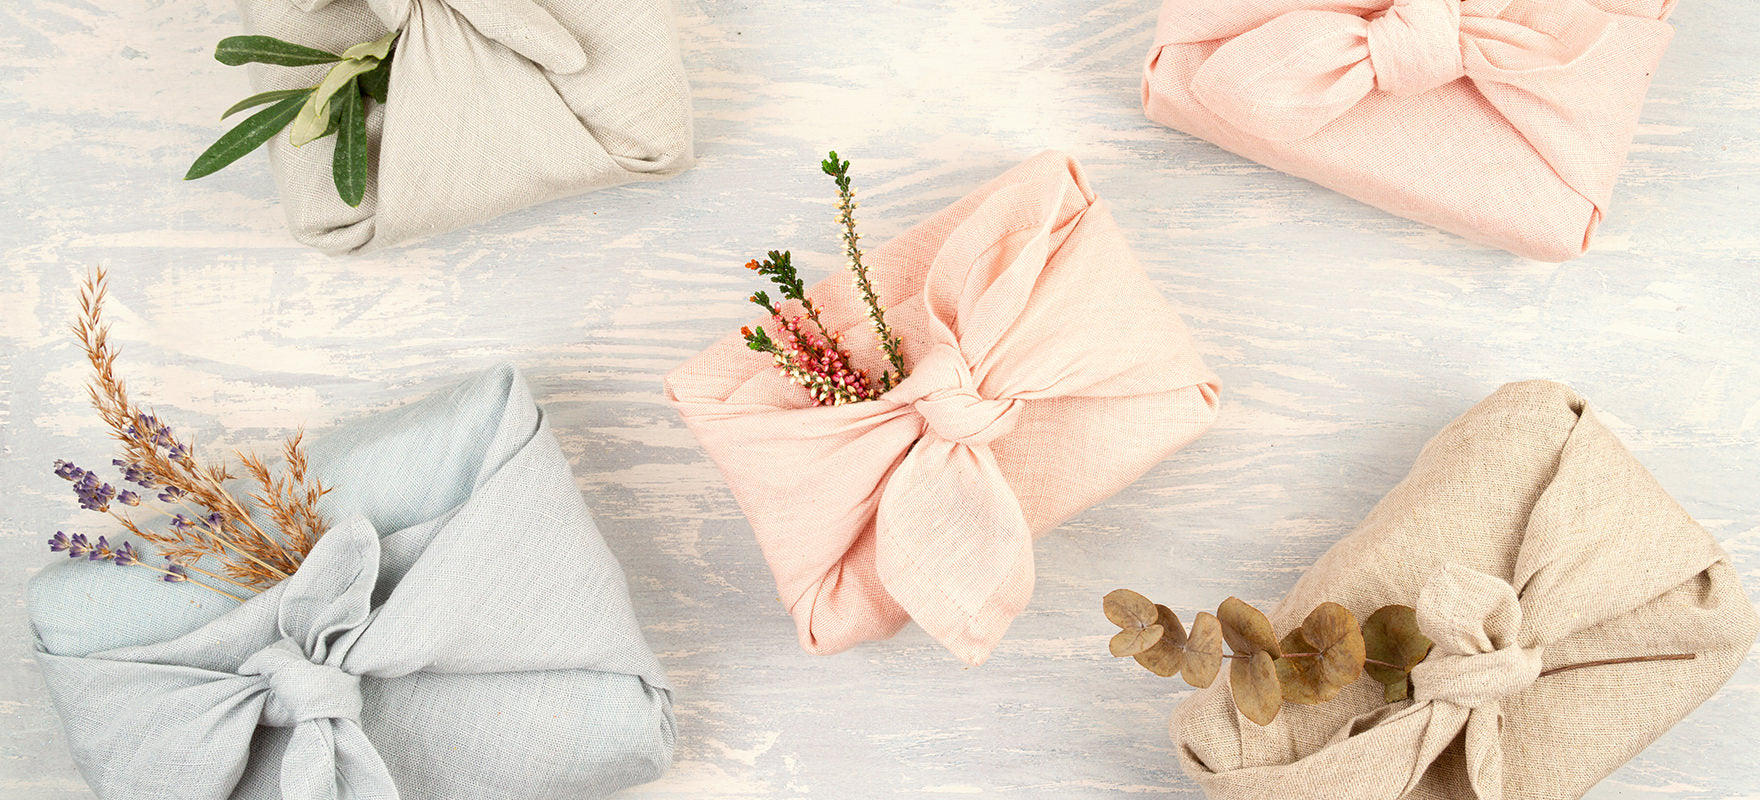 Five multicoloured cloths are artfully wrapped around gifts as a way to reduce landfill waste around the holidays from excess gift wrapping. These furoshiki wraps are an eco-friendly gift wrapping idea.